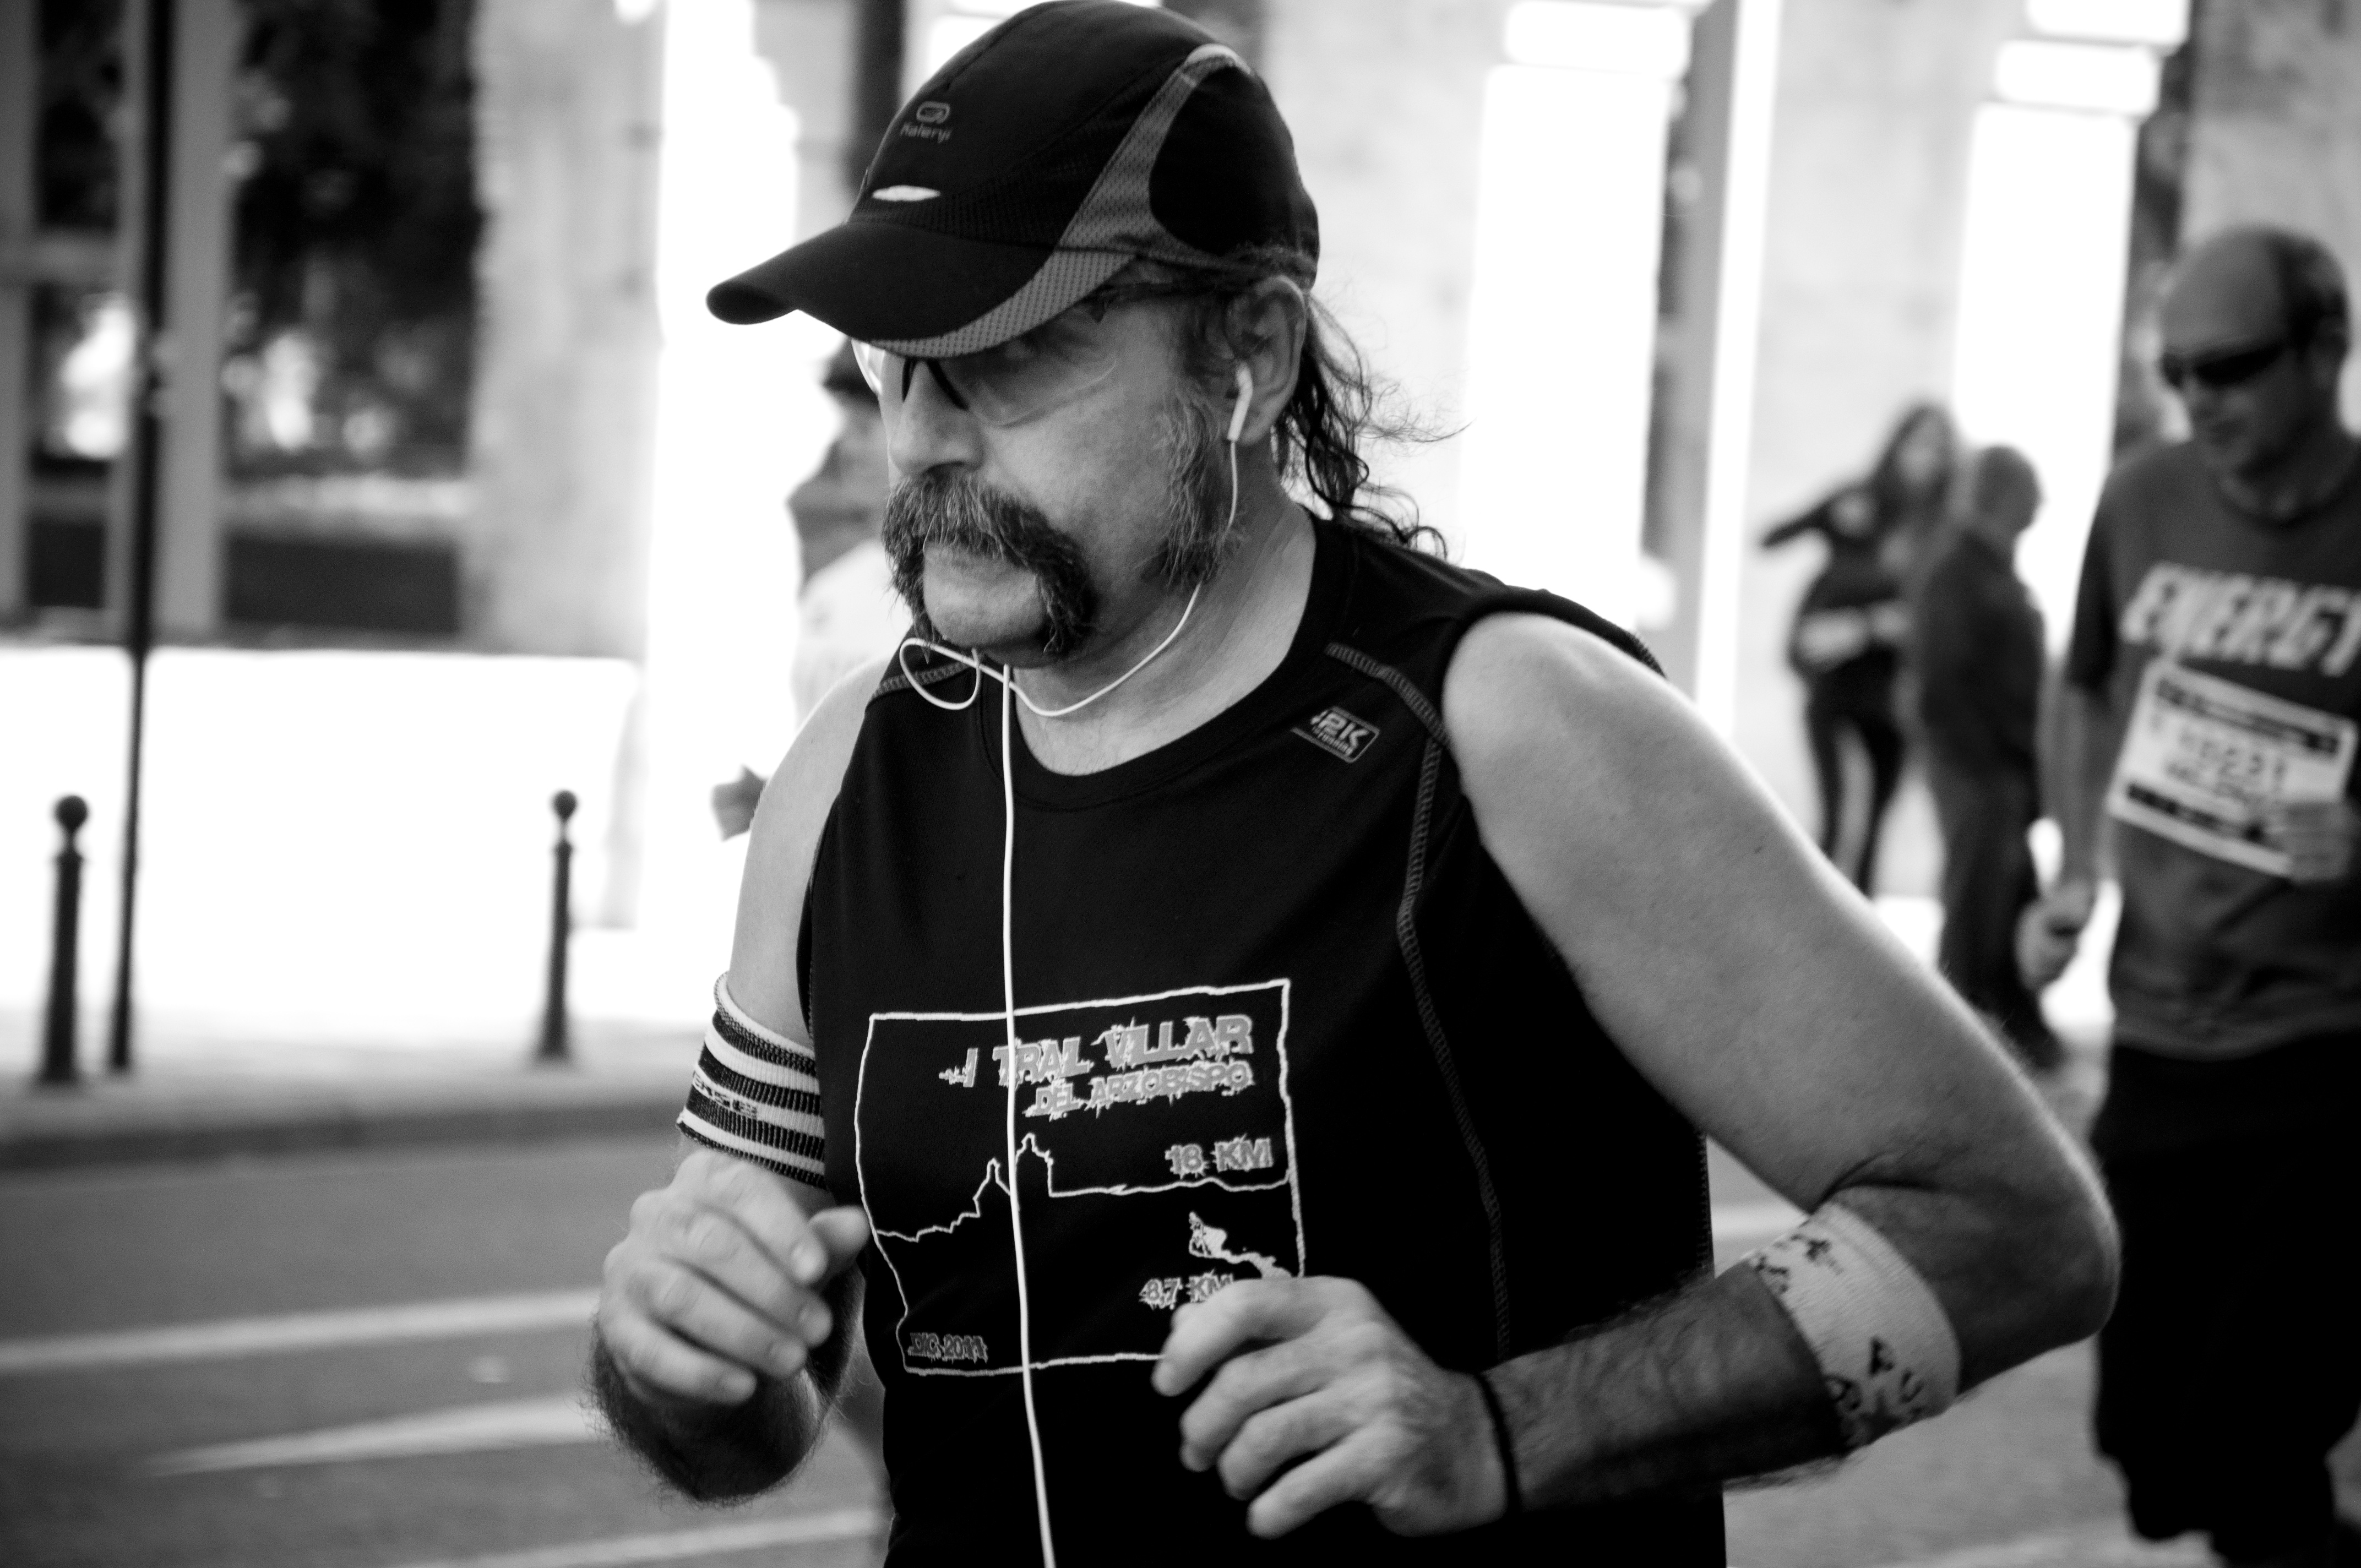 Marathon project | Valencia, Spain, 2016